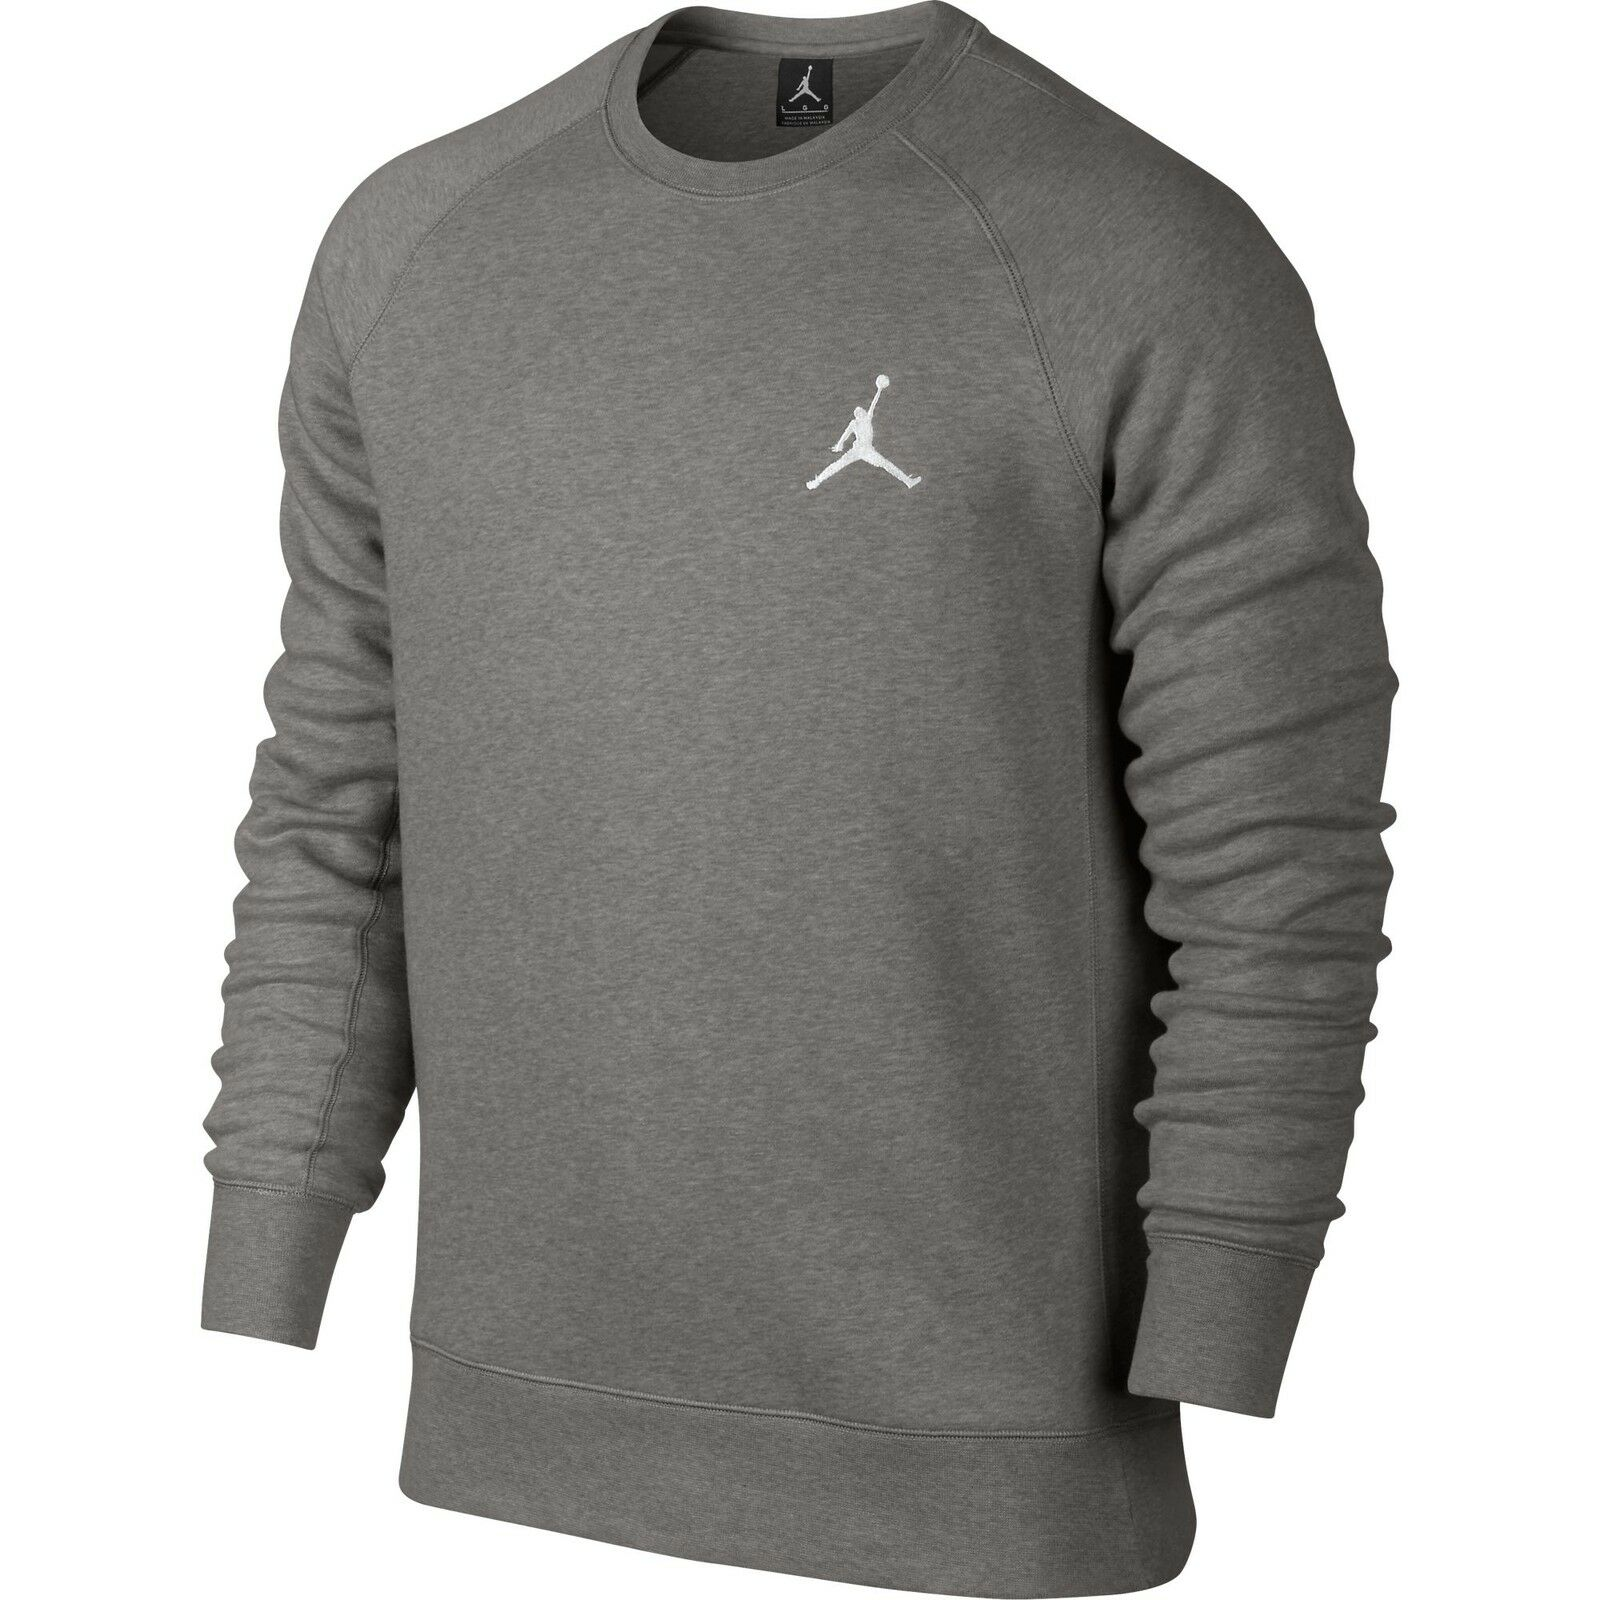 Jordan Flight Crew Long Sleeve Men's Sweatshirt Grey White 823068-063